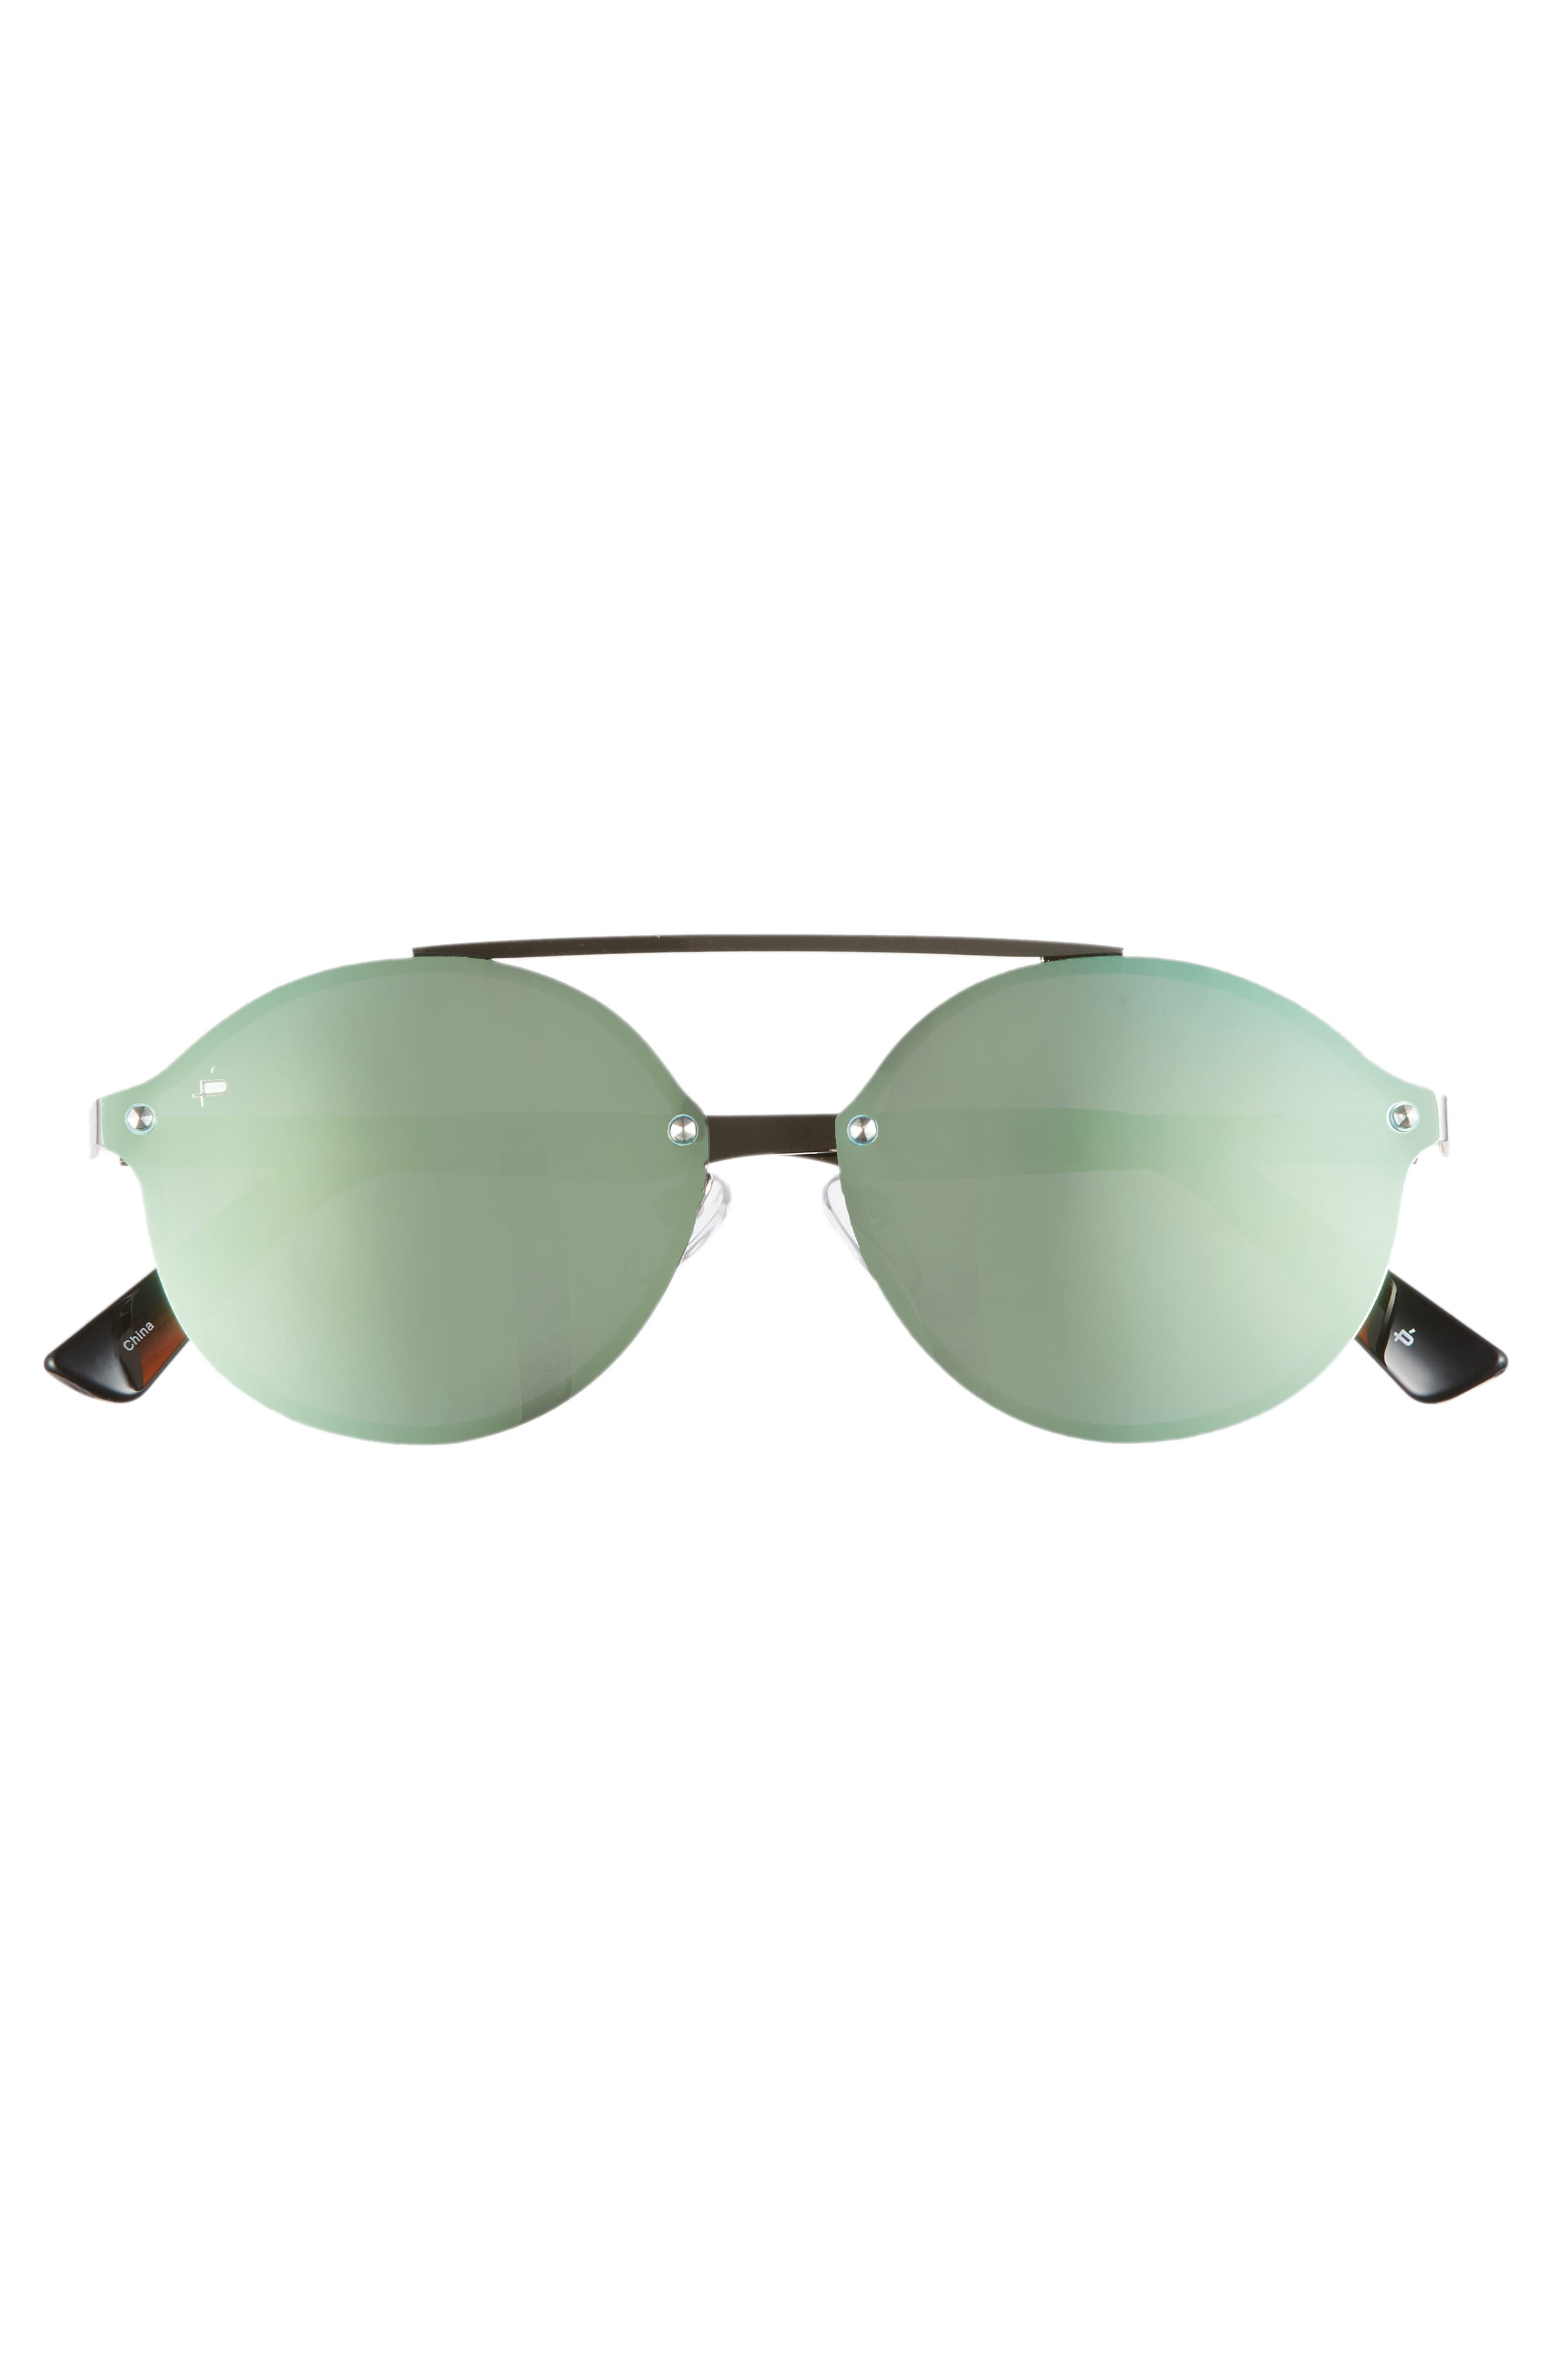 Privé Revaux The Orient 58mm Sunglasses,                             Alternate thumbnail 3, color,                             DARK BLUE MIRROR